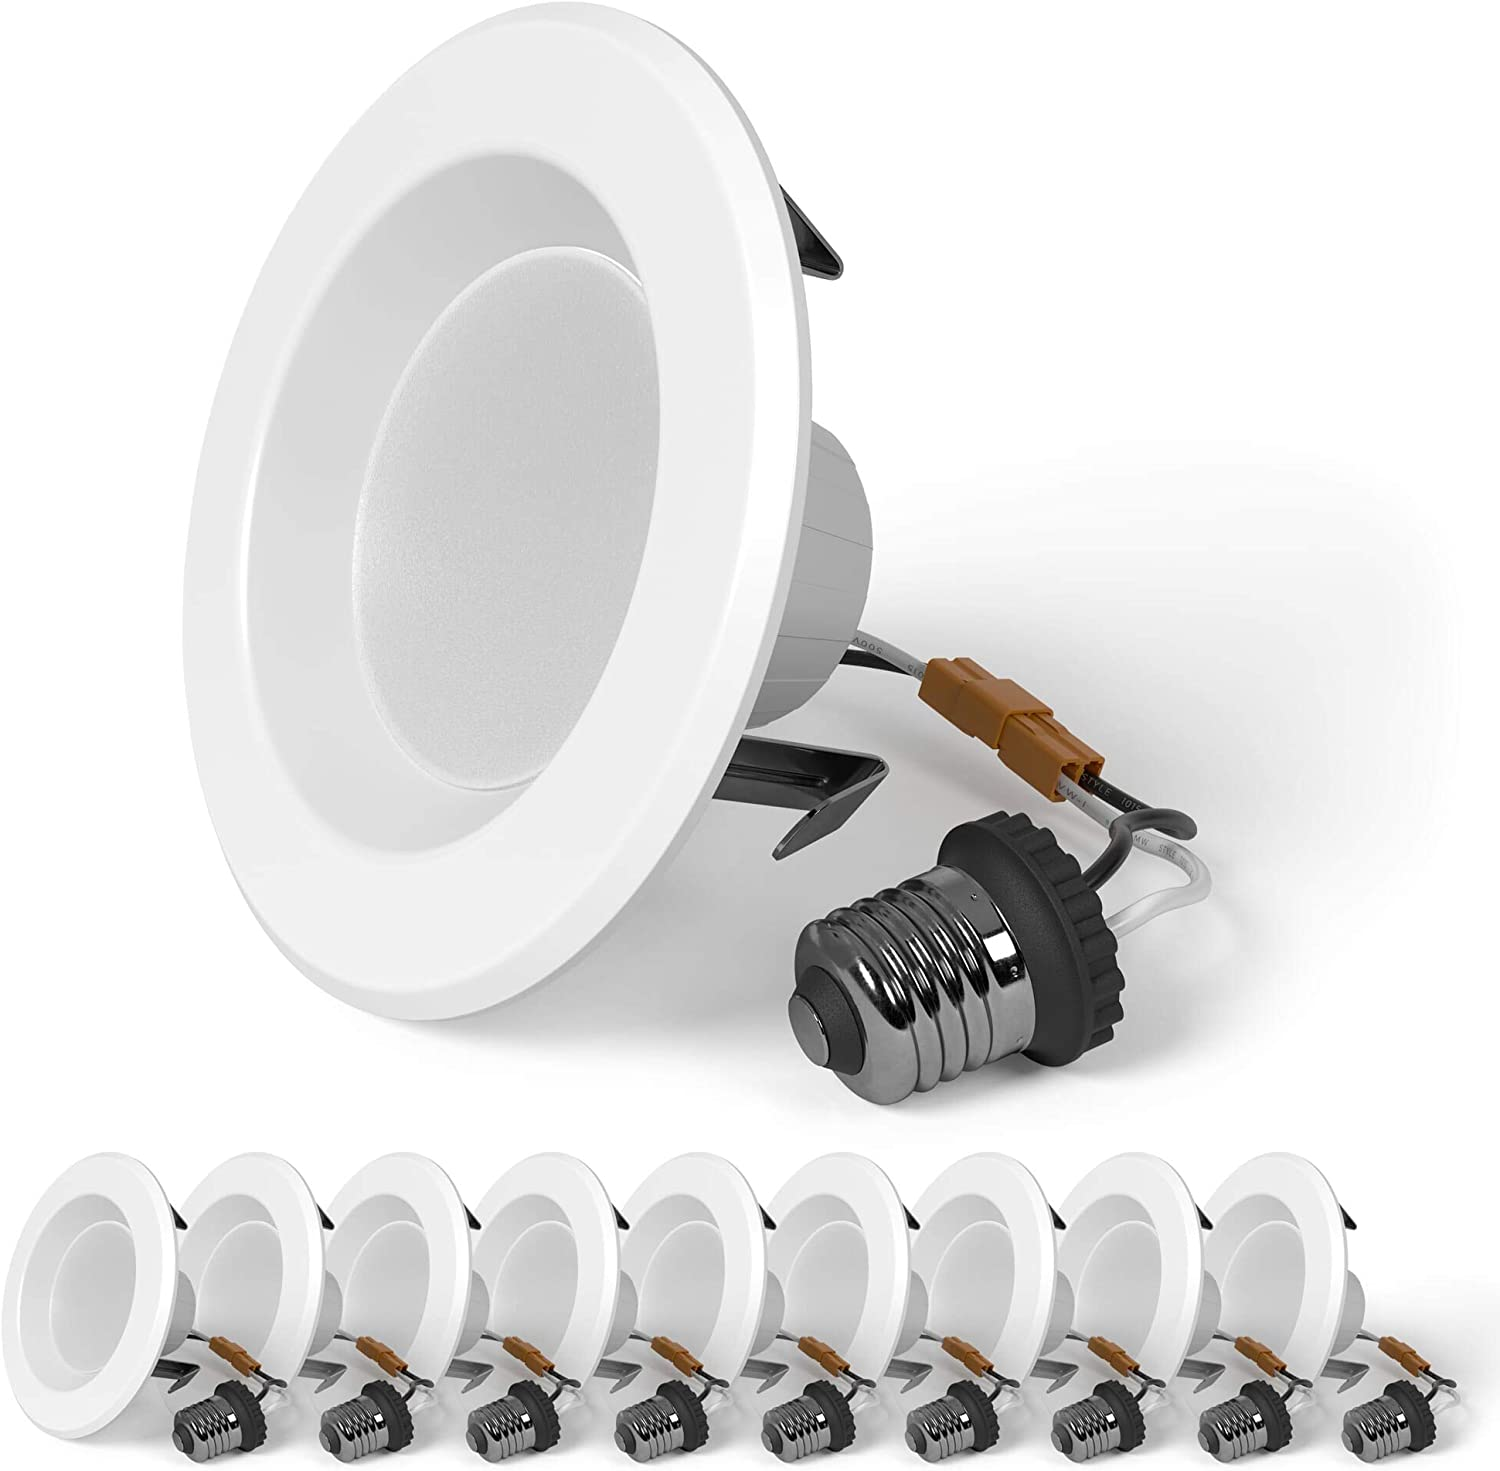 SunLake 10 Pack LED Recessed Super popular specialty store Lighting T Japan Maker New Downlight Smooth 4 Inch